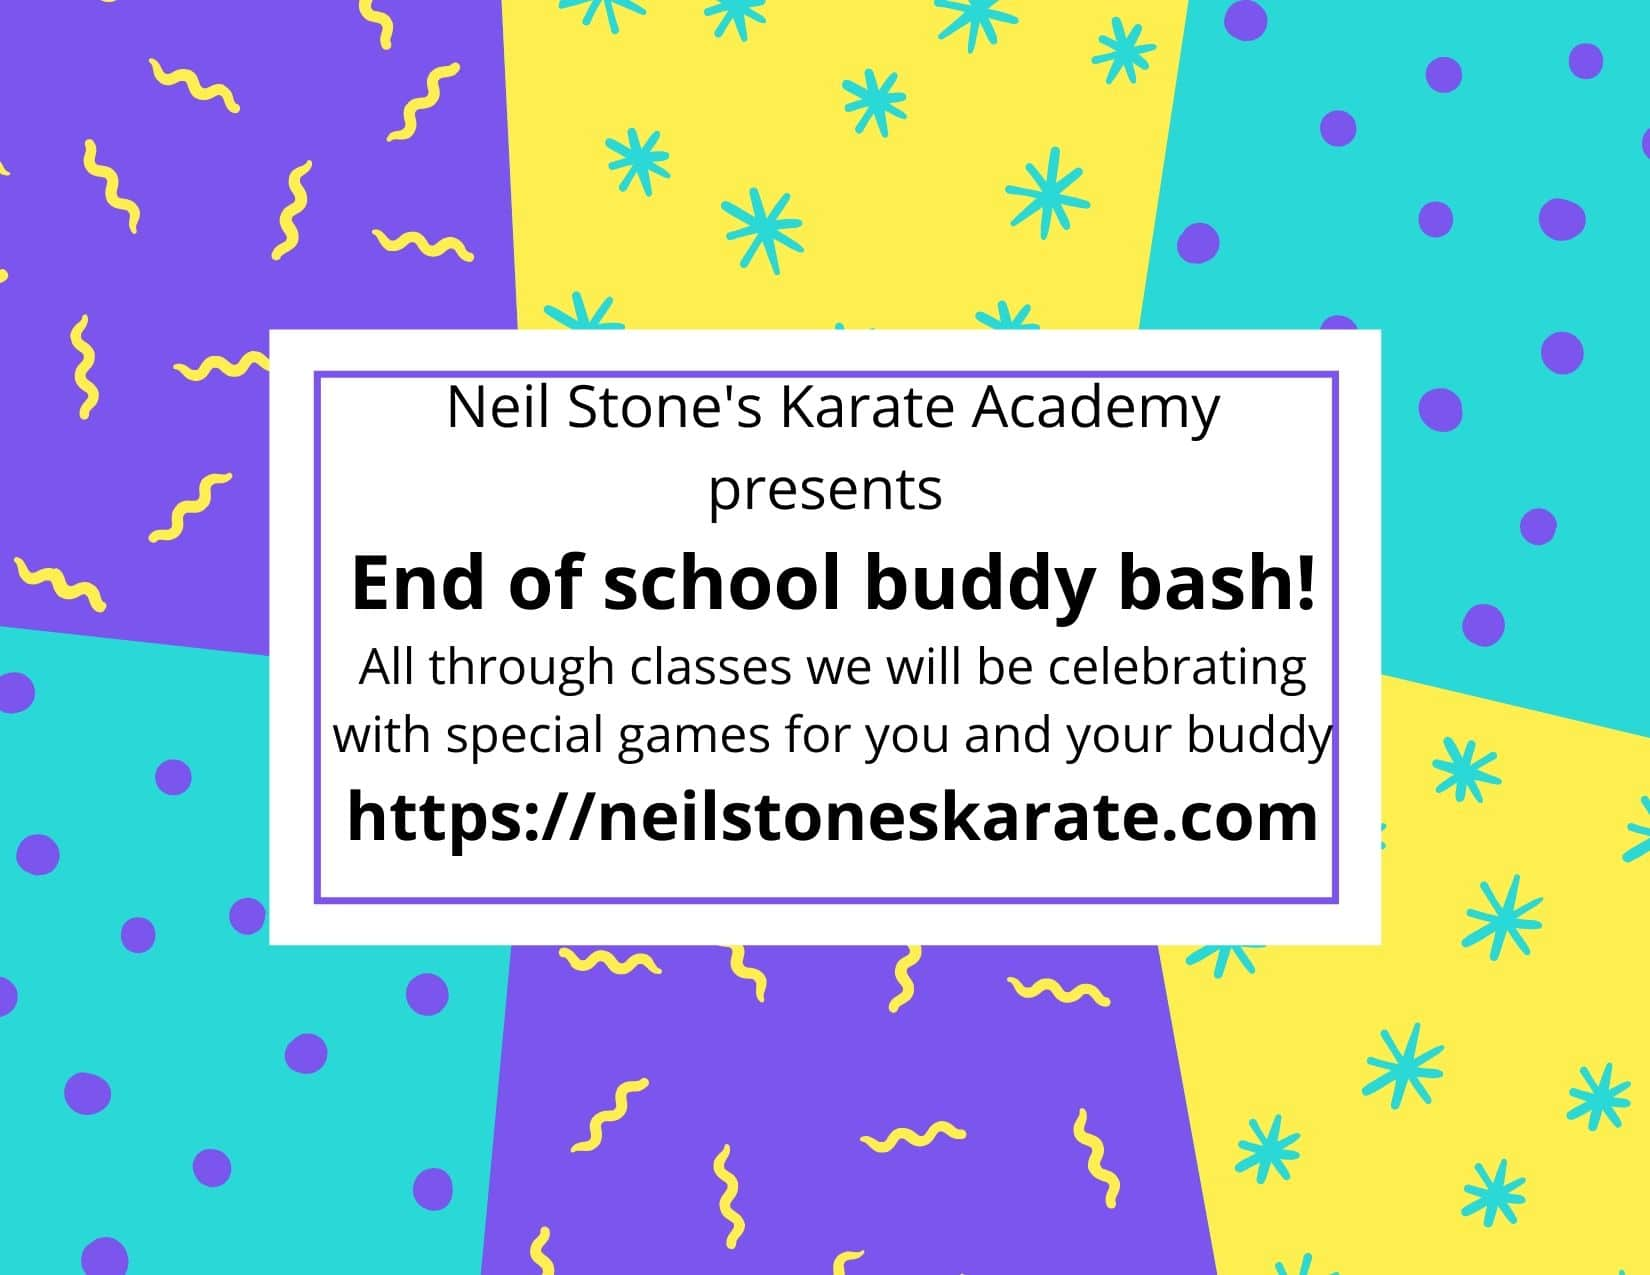 Neil Stone's Karate Academy End of School